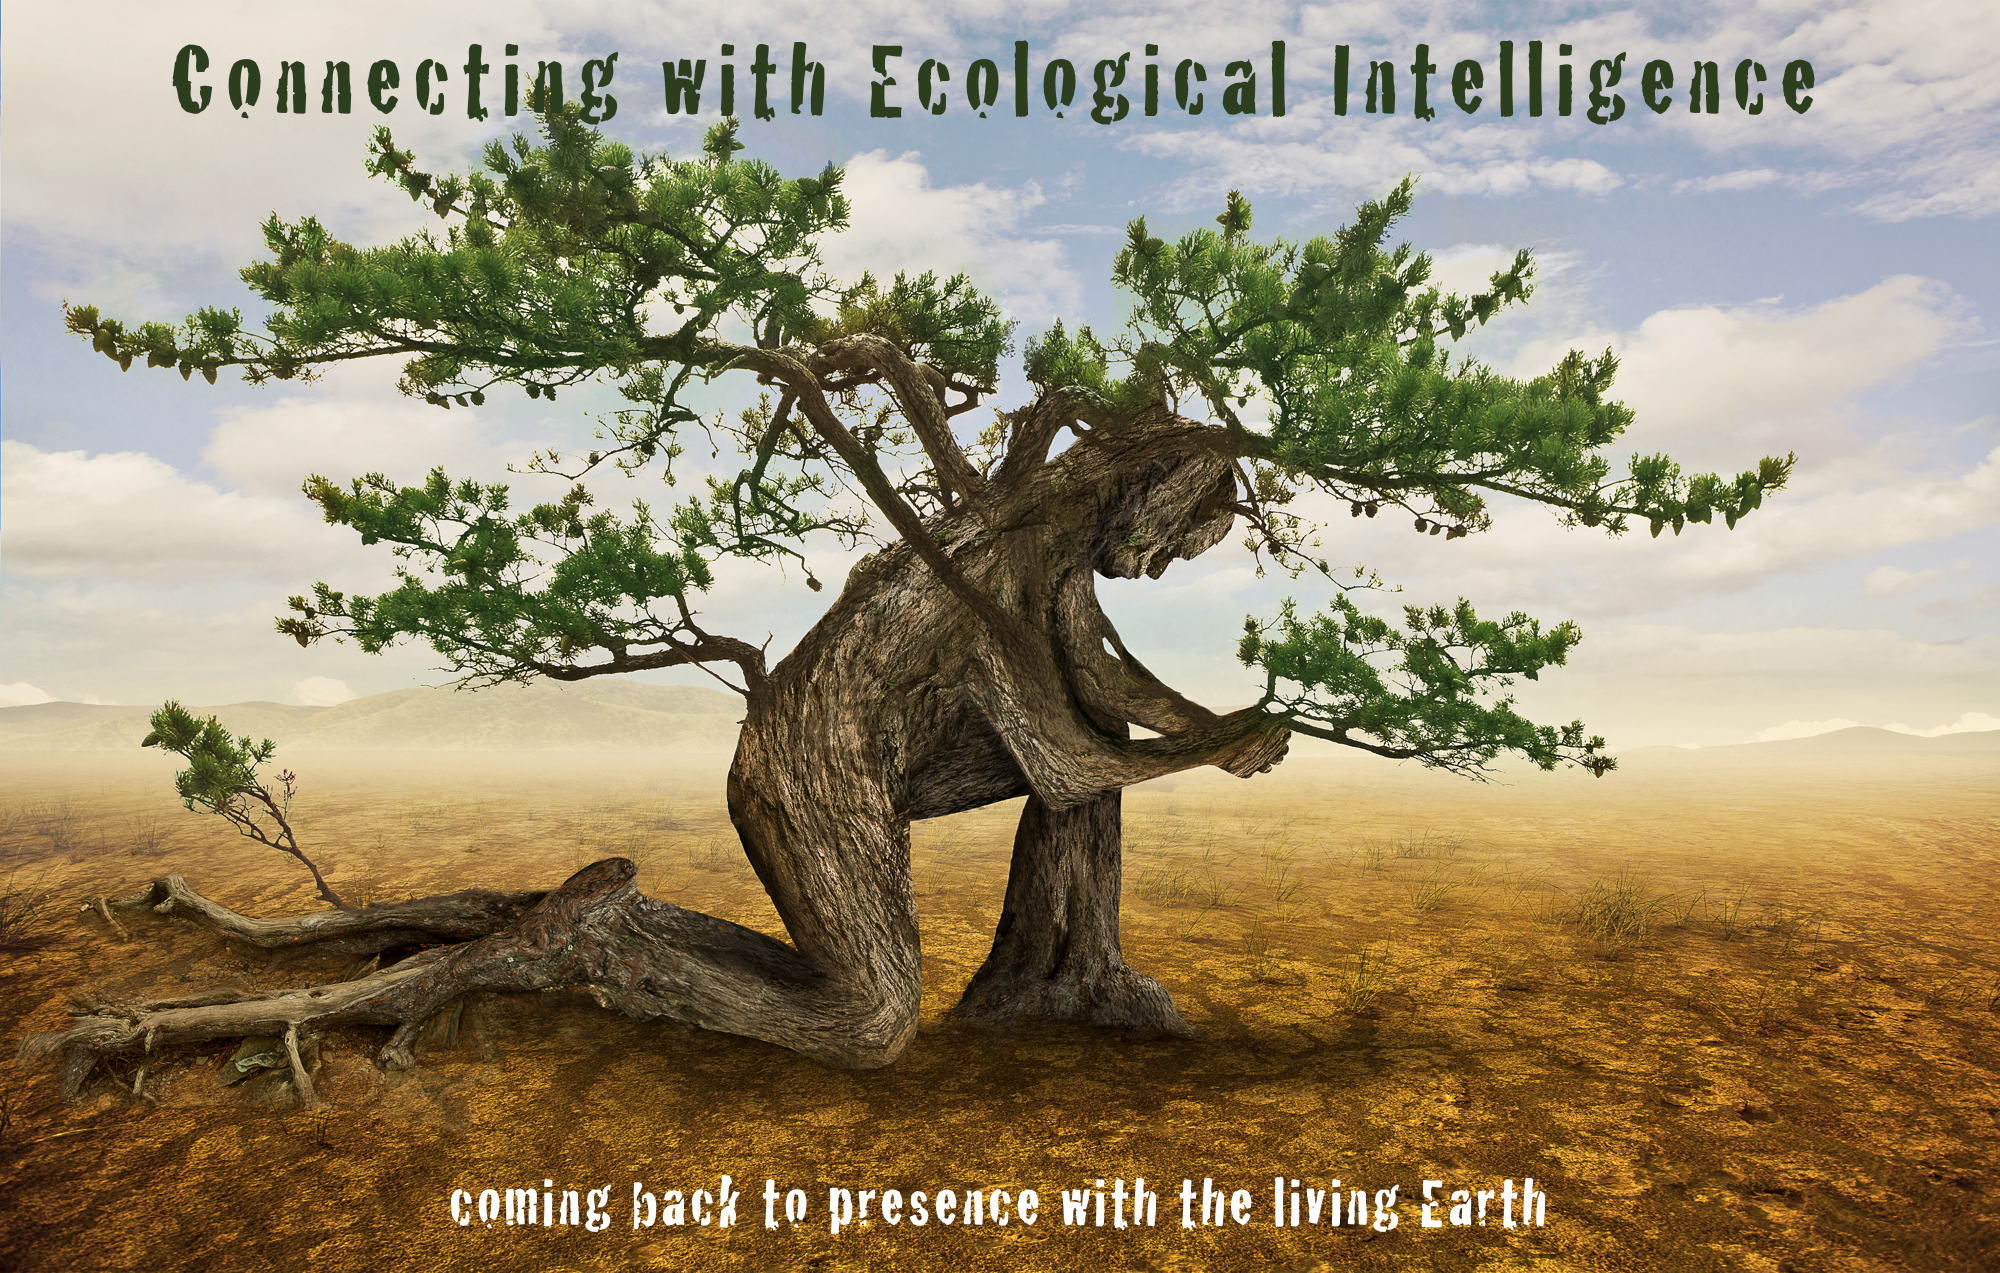 Ecological Intelligence Blog - See my latest posts